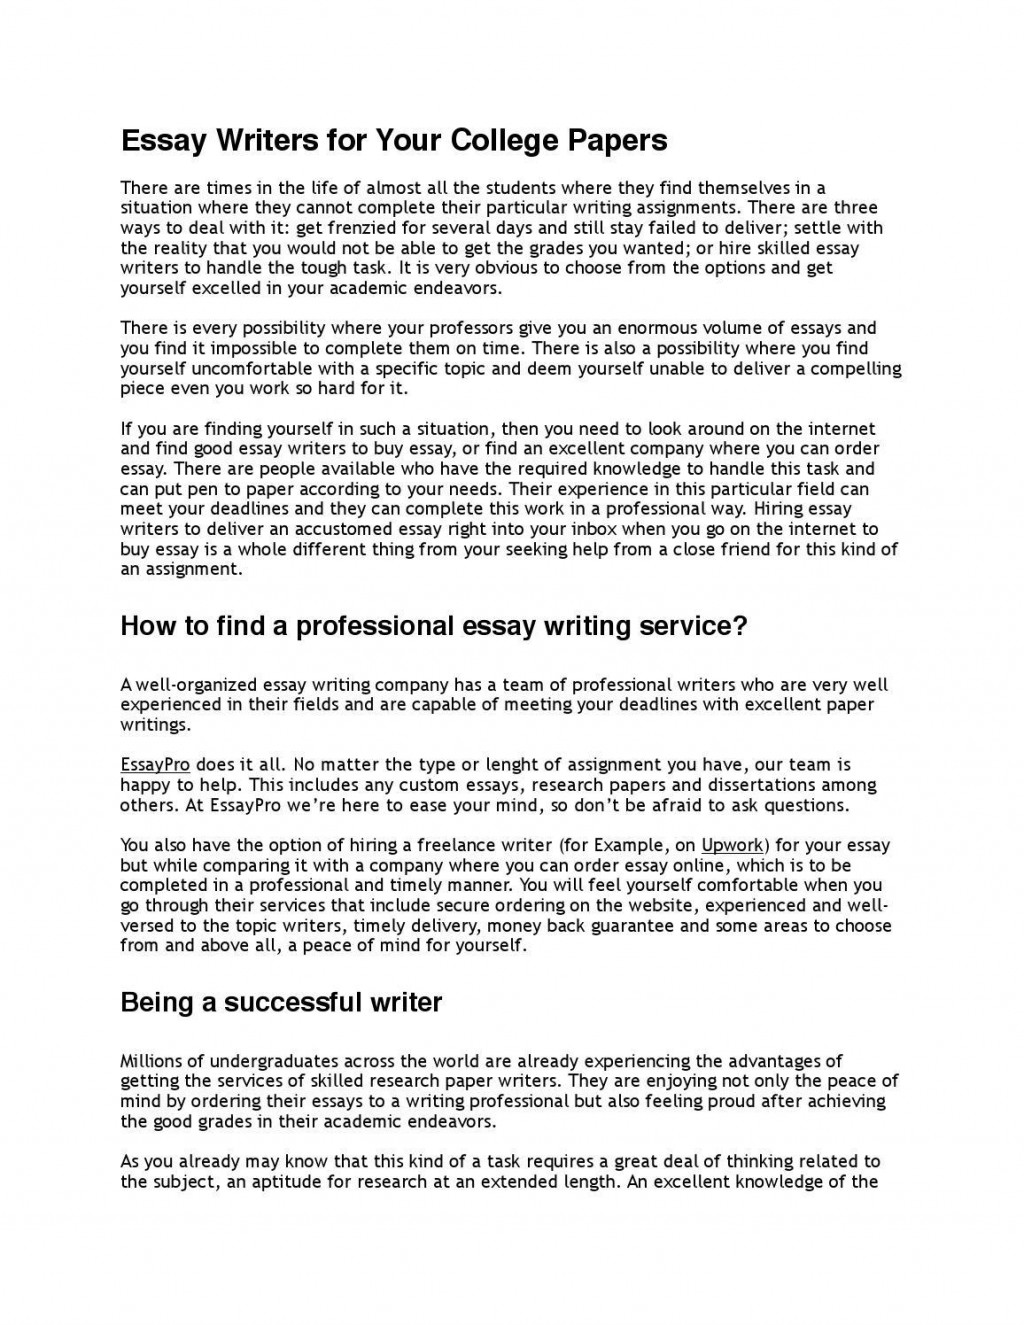 006 Who Are You Essay Page 1fit11562c1496ssl1 Rare Motivates Inspires Examples College Large